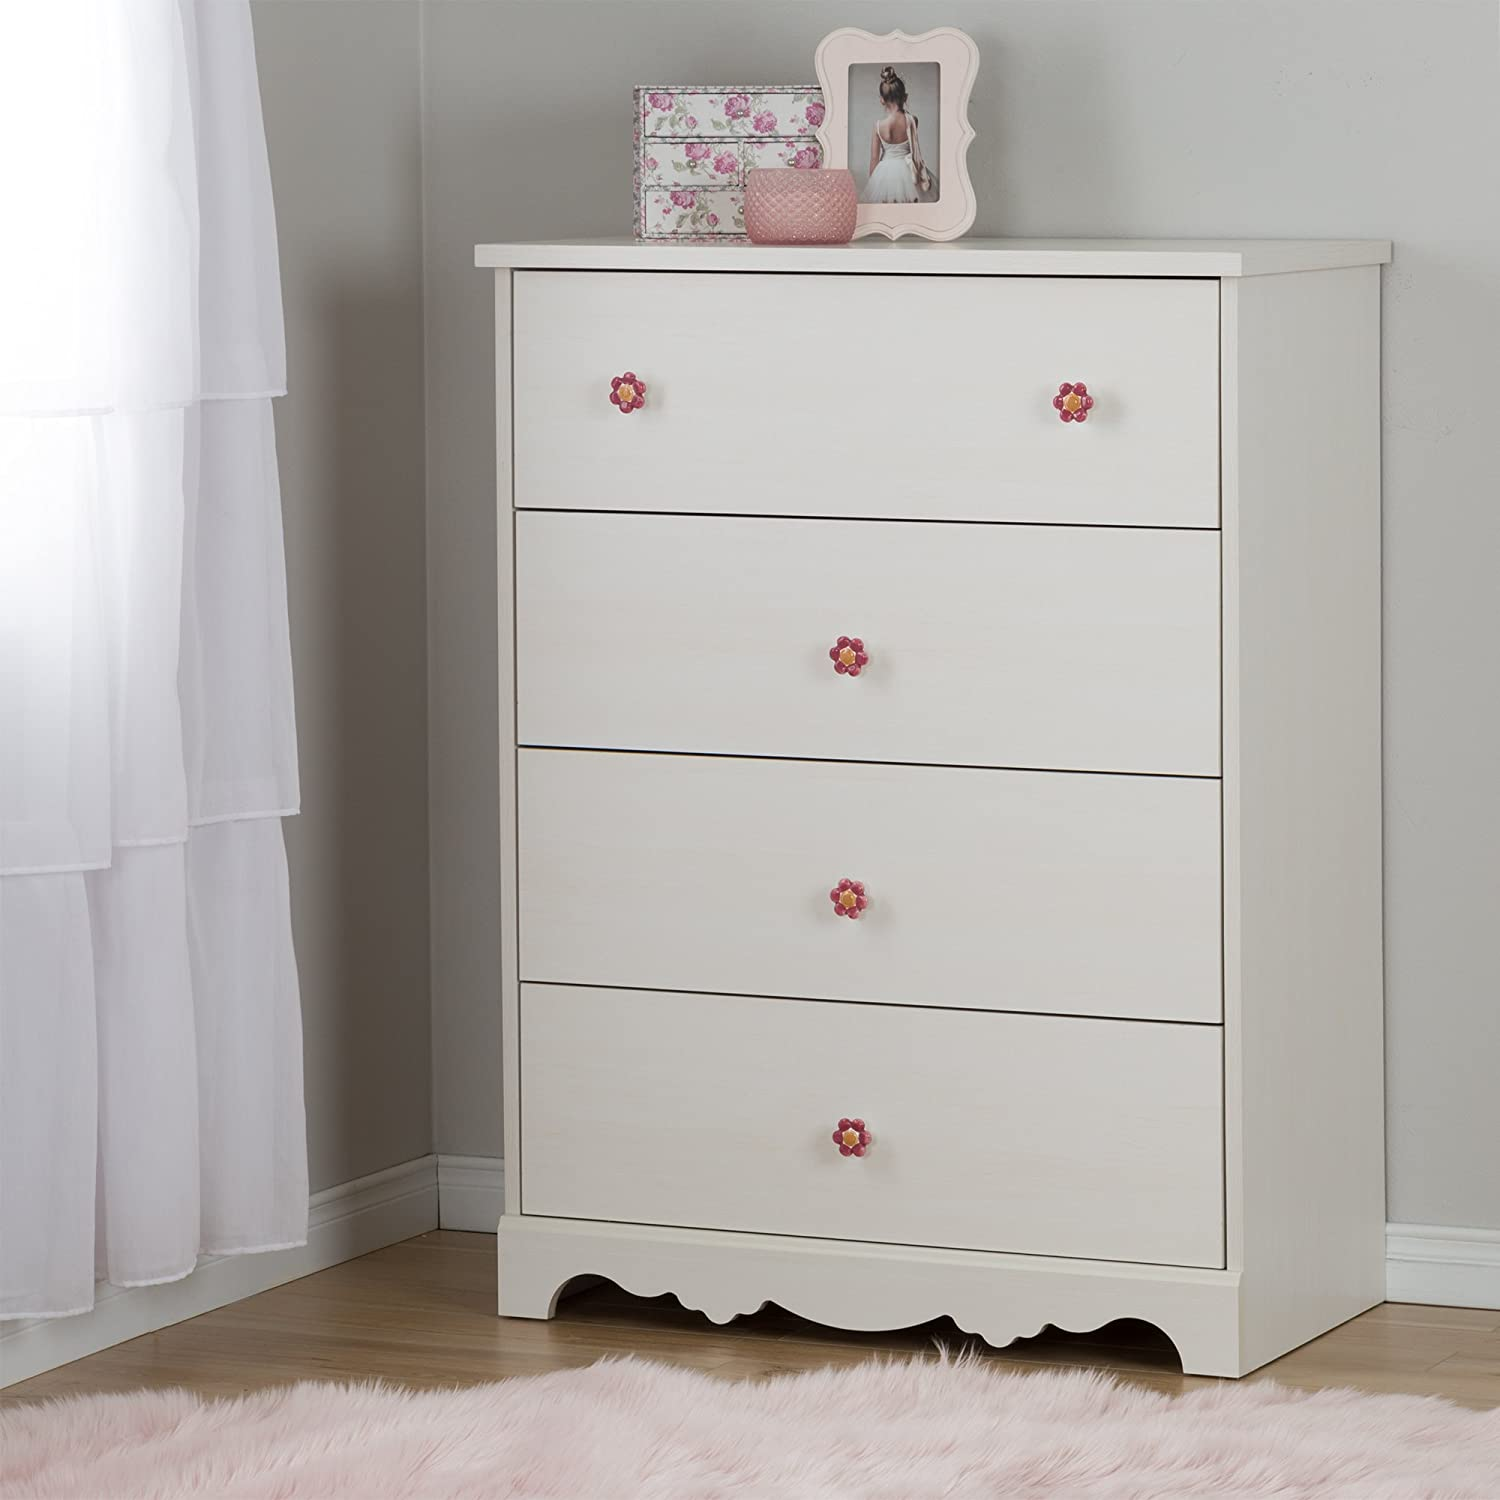 South Shore Furniture Lily Rose 4-Drawer Chest, White Wash 10077